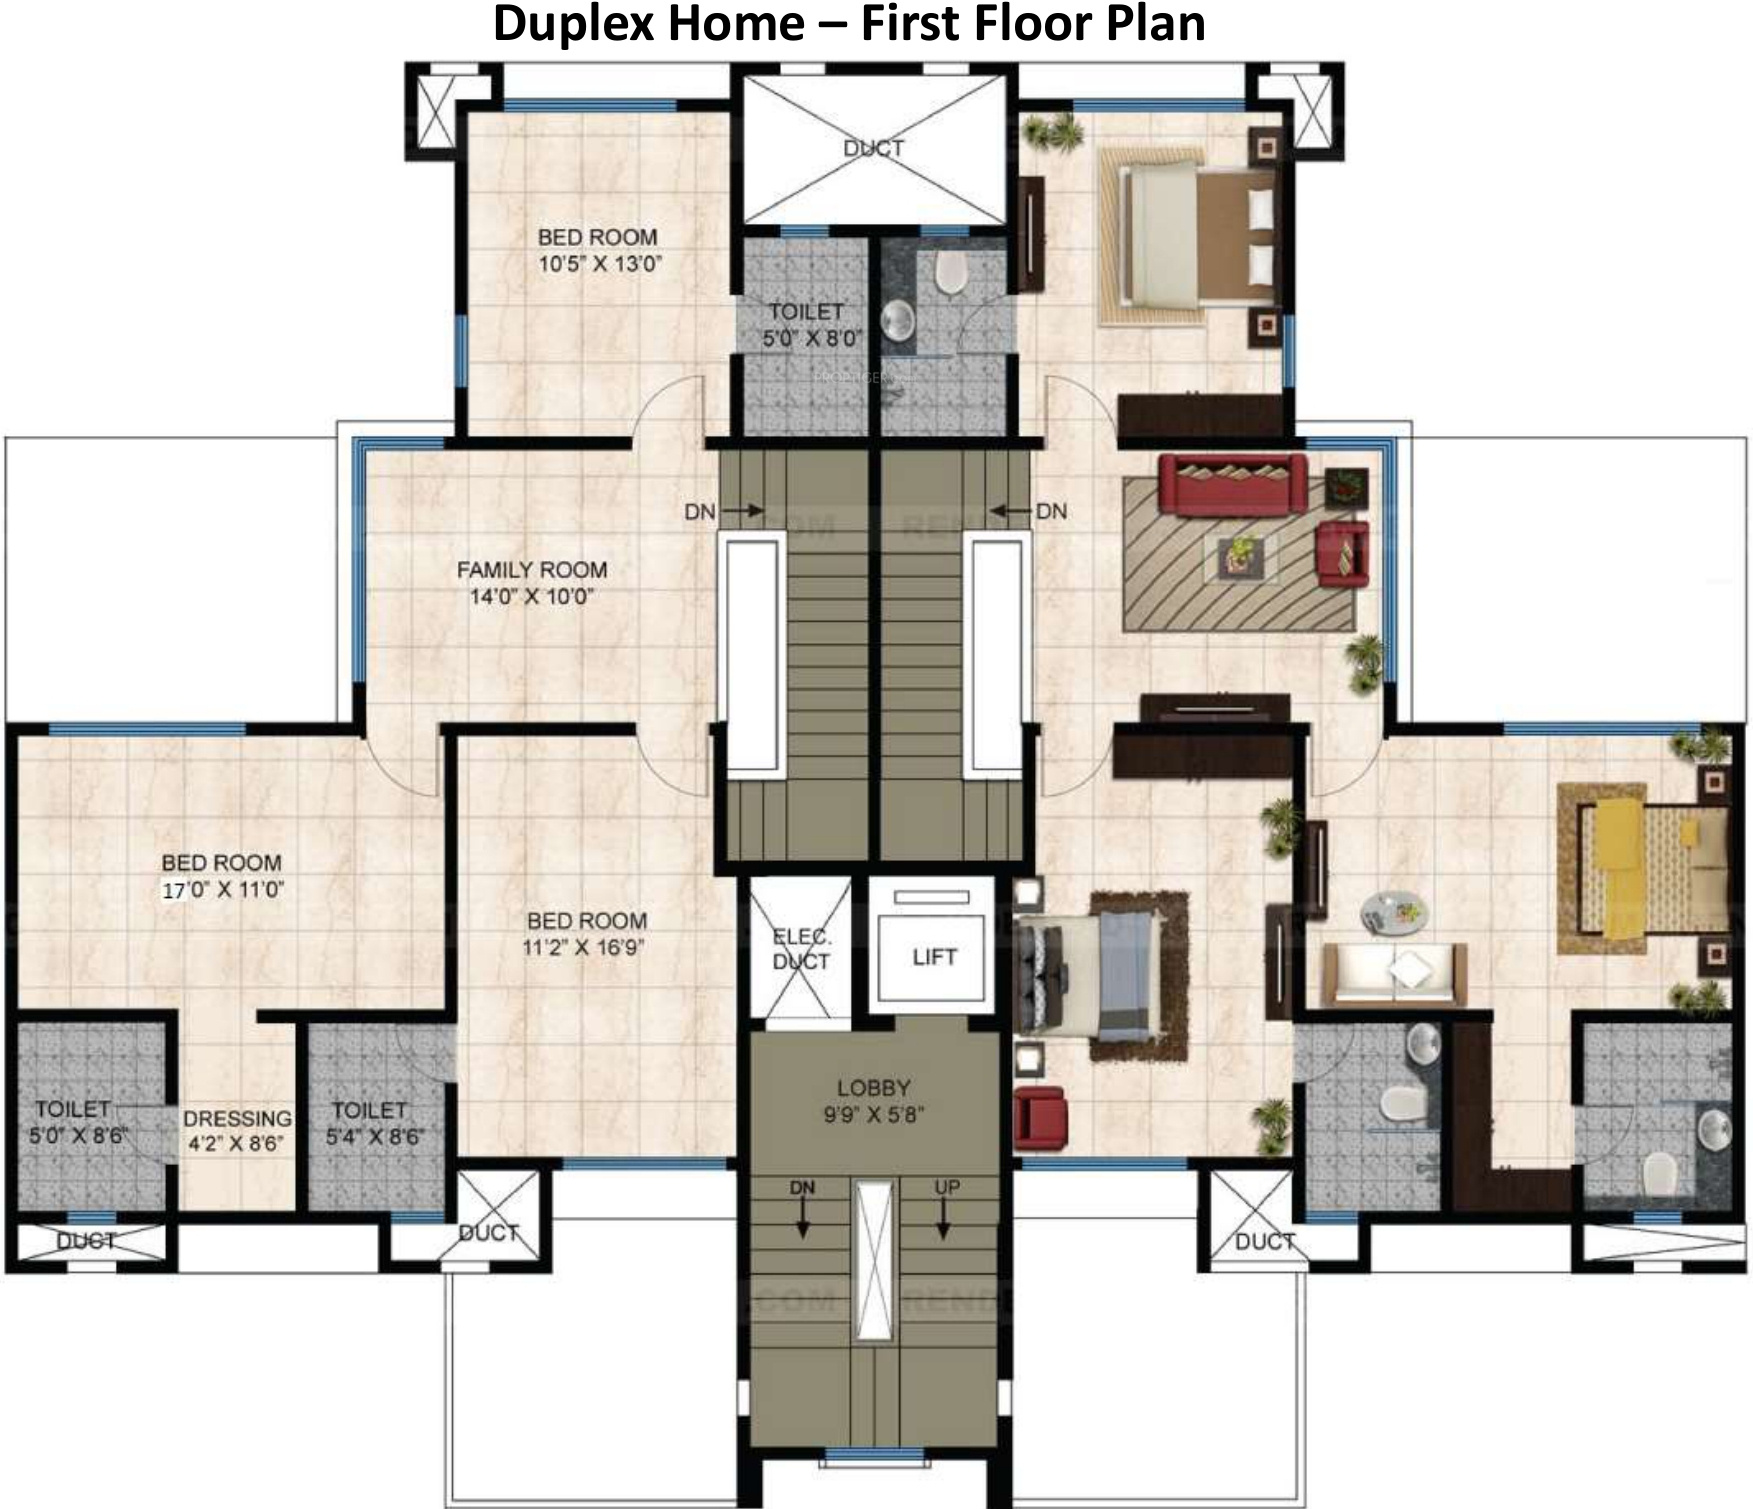 bedroom duplex floor plans in nagpur duplex home plans ideas picture